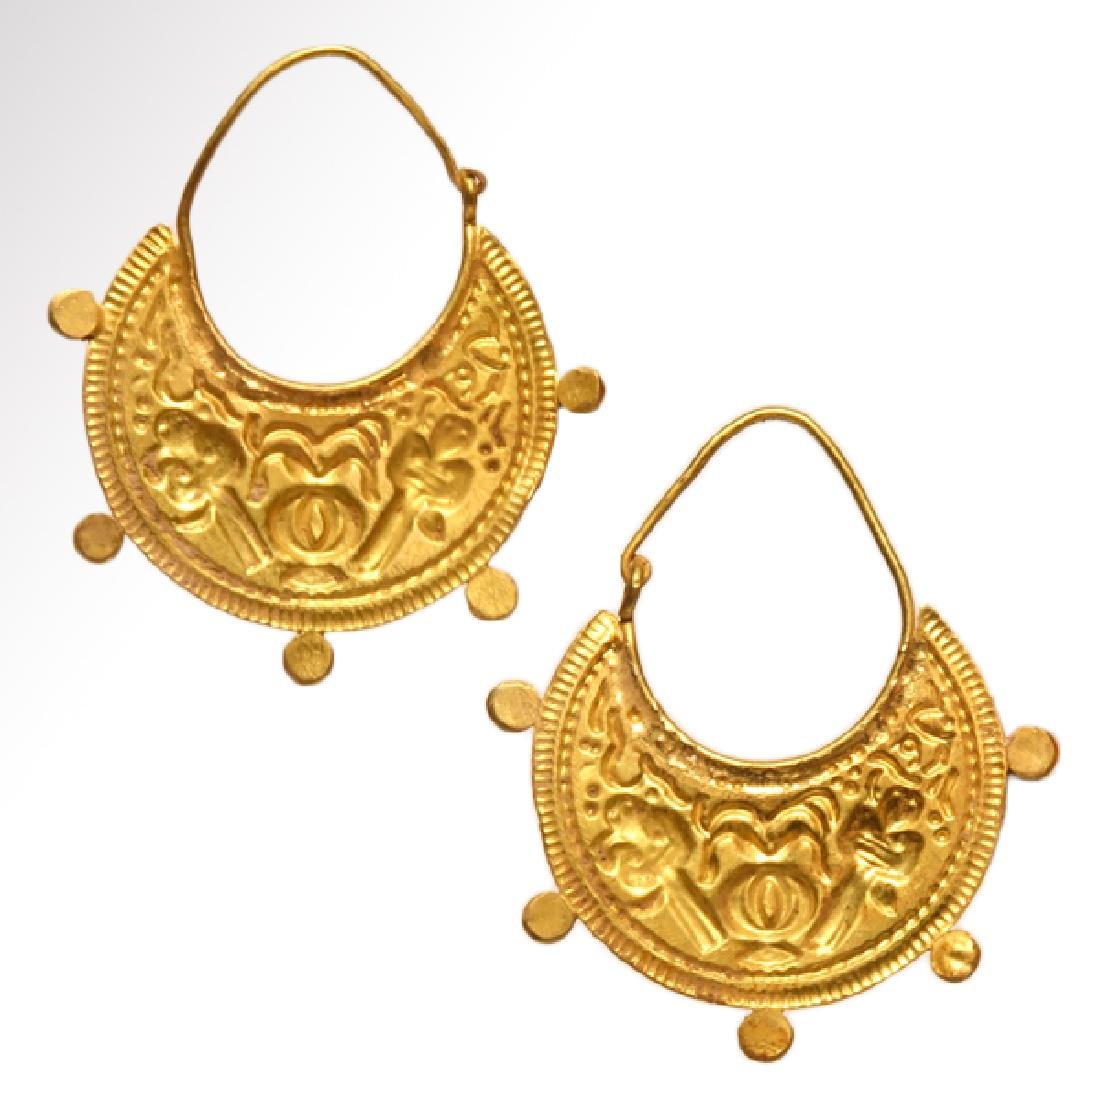 Roman / Early Byzantine Gold Earrings - 4